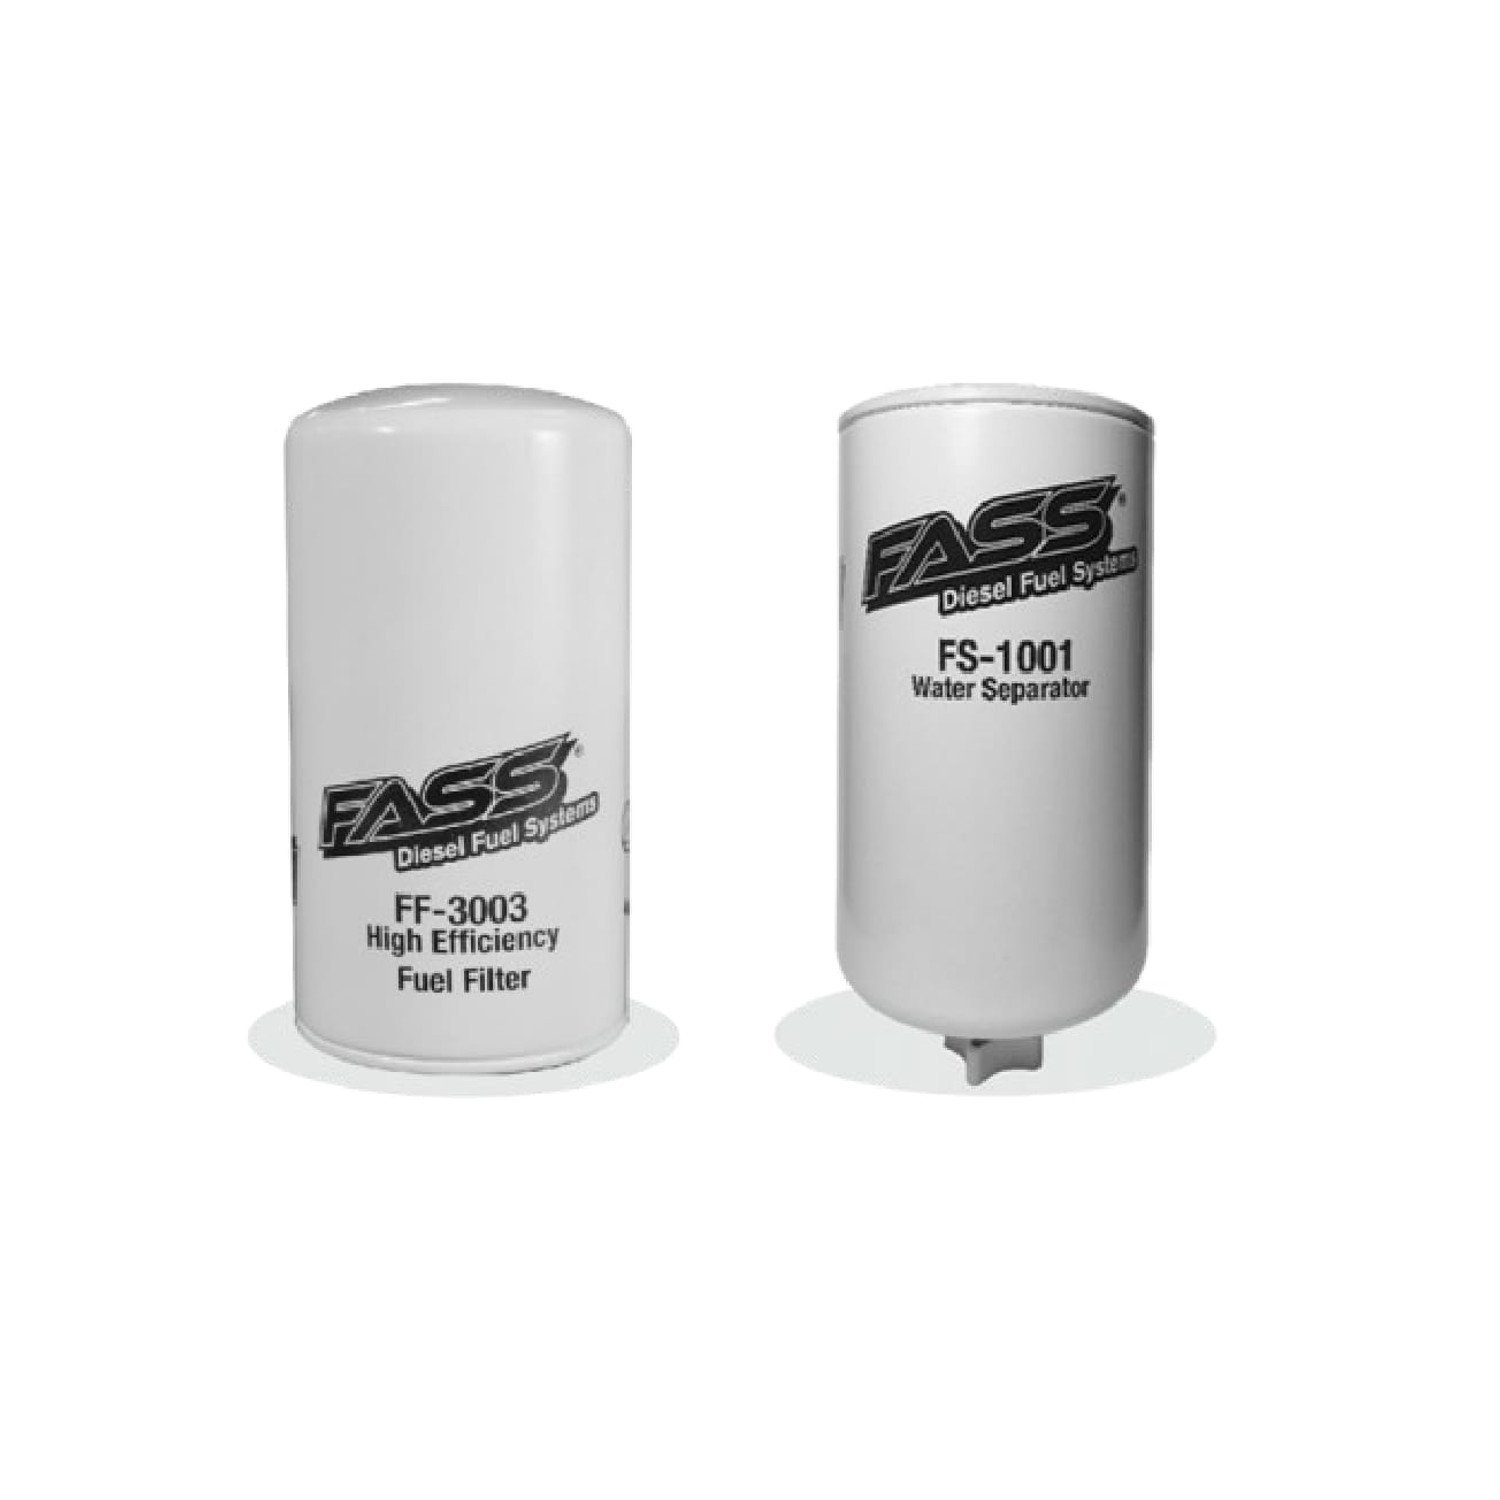 FASS Titanium Series Fuel Filter and Water Separator Combo With FF-3003 Fuel Filter and FS-1001 Water Separator for Fuel Pump